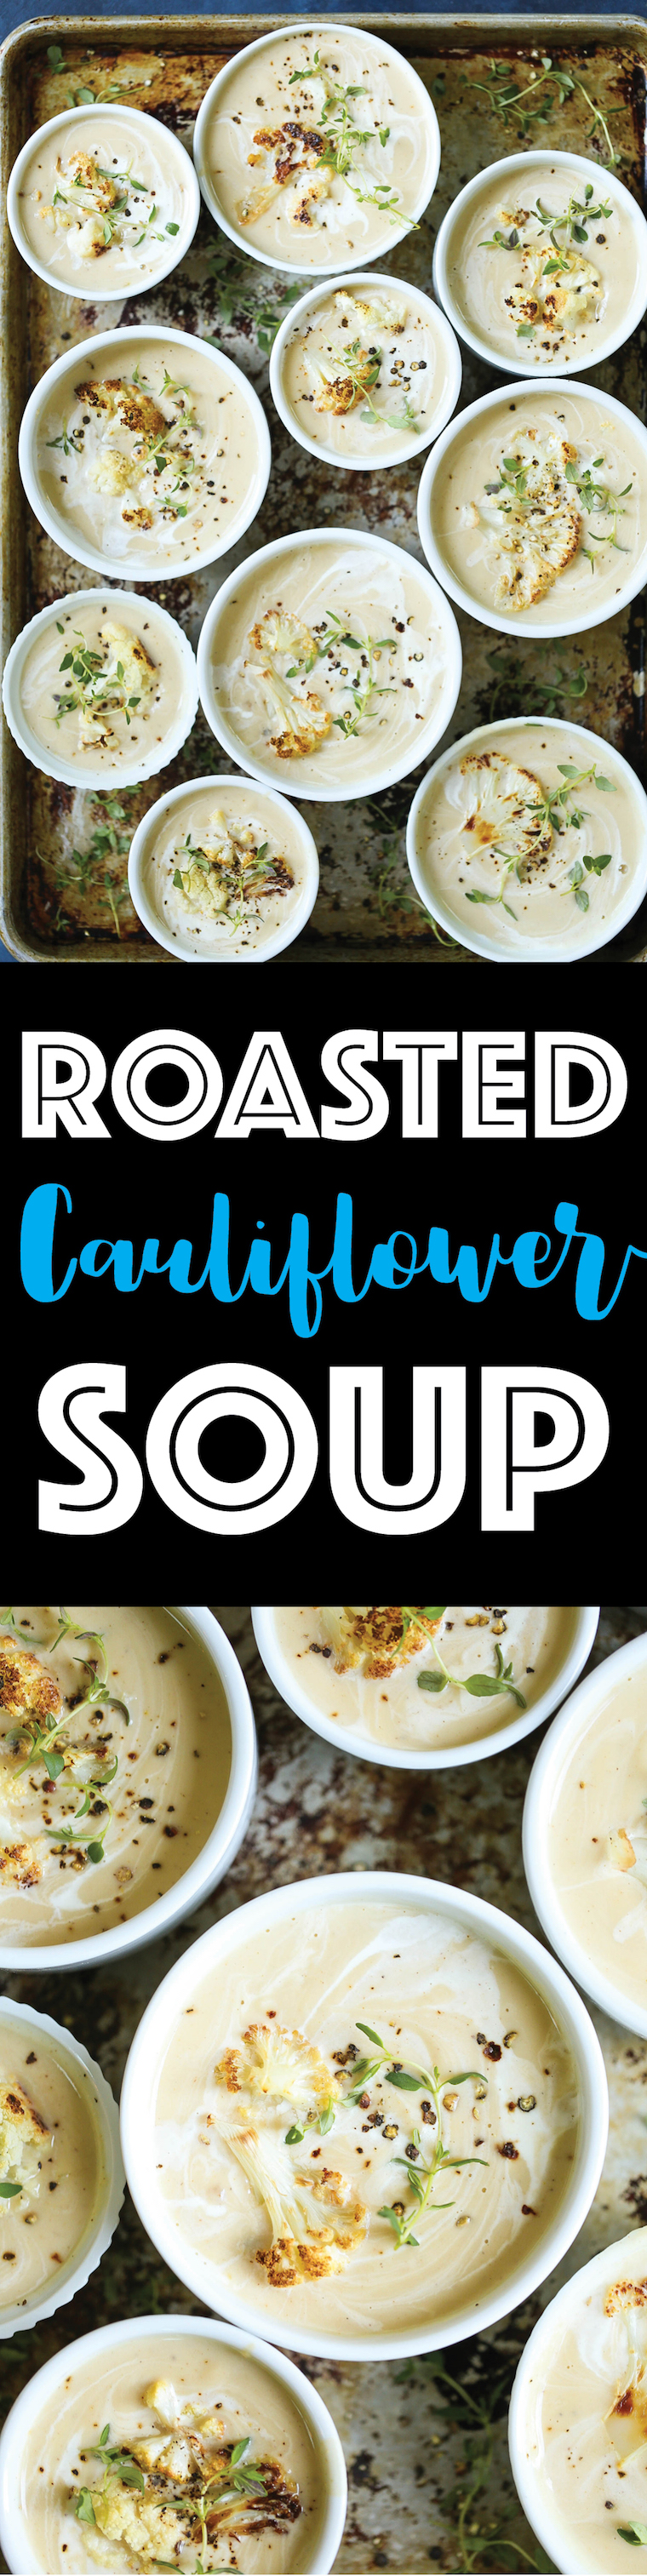 Roasted Cauliflower Soup - You will not believe that this is actually cauliflower soup! It is so creamy, so comforting, and packed with so much flavor with healthier ingredients!